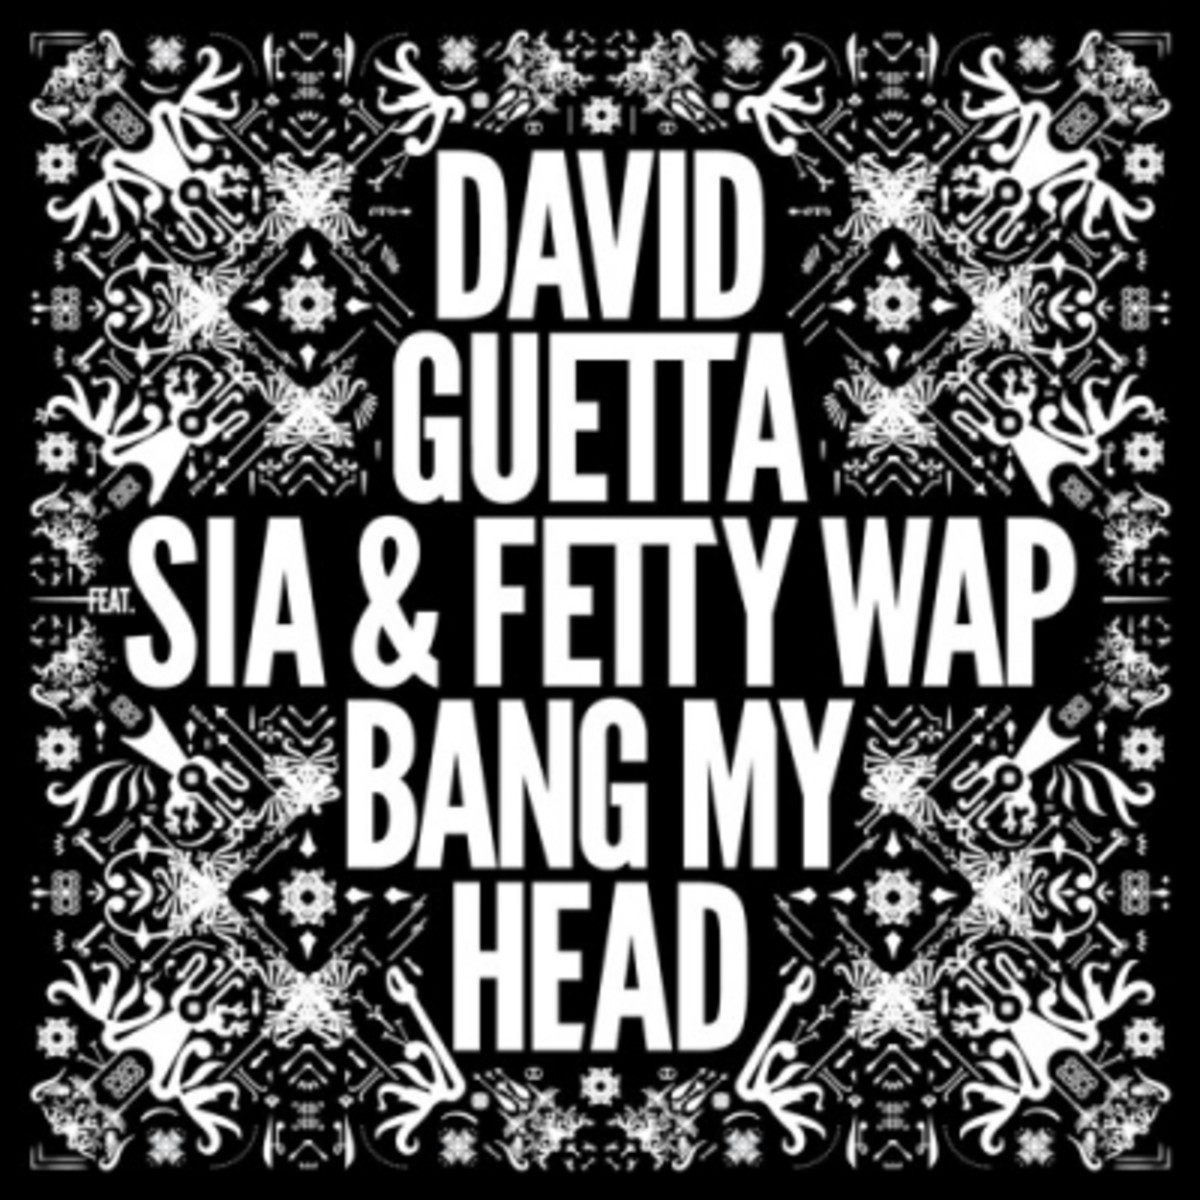 david-guetta-bang-my-head.jpg